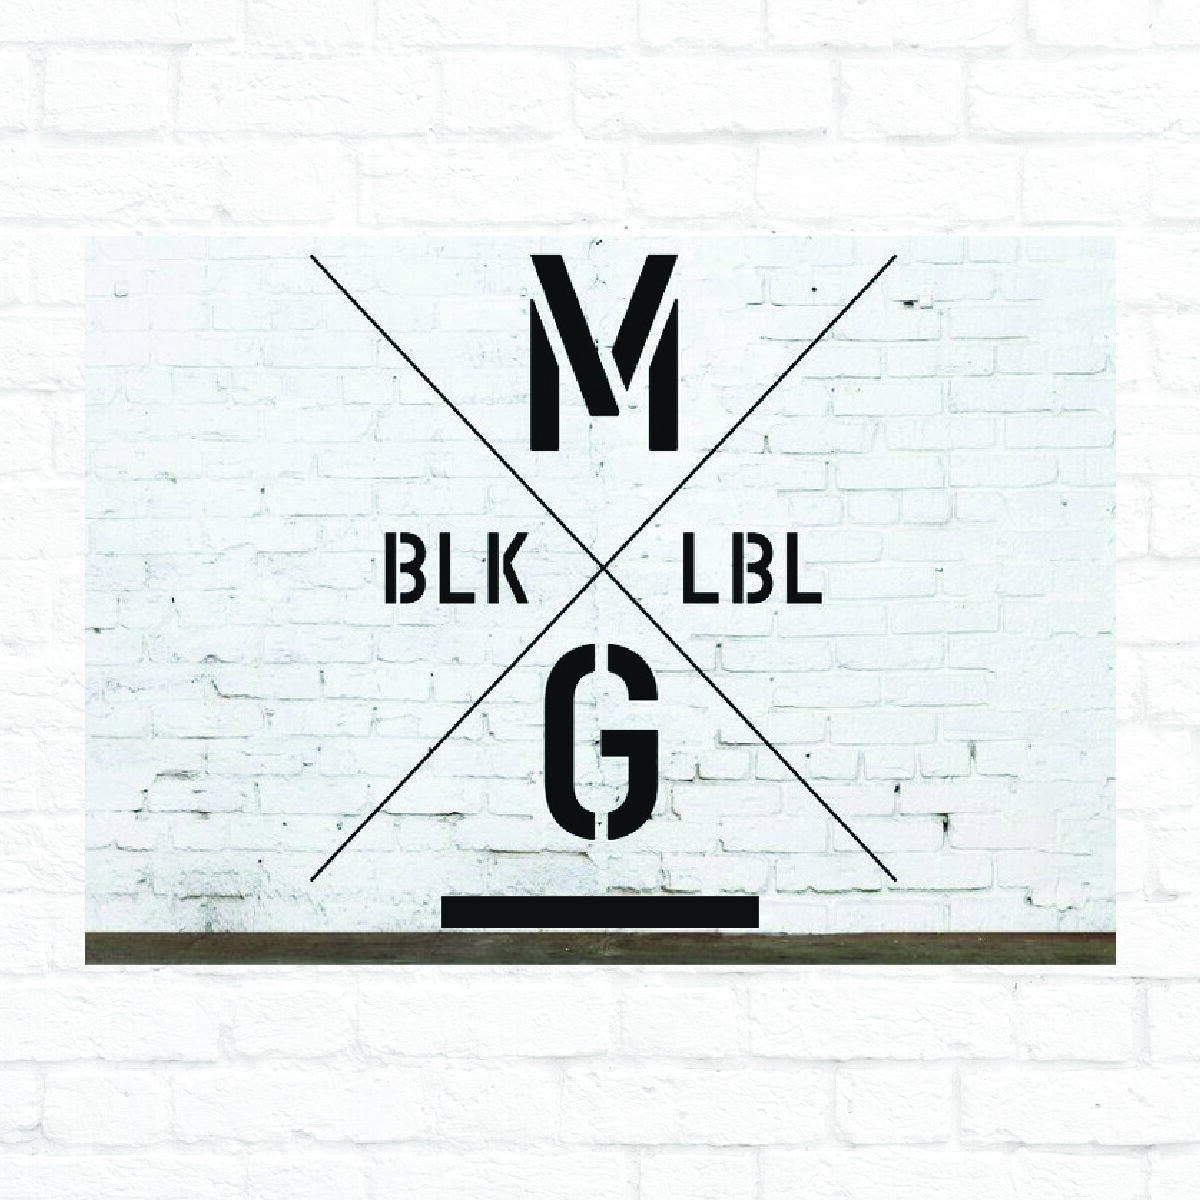 MG Black Label